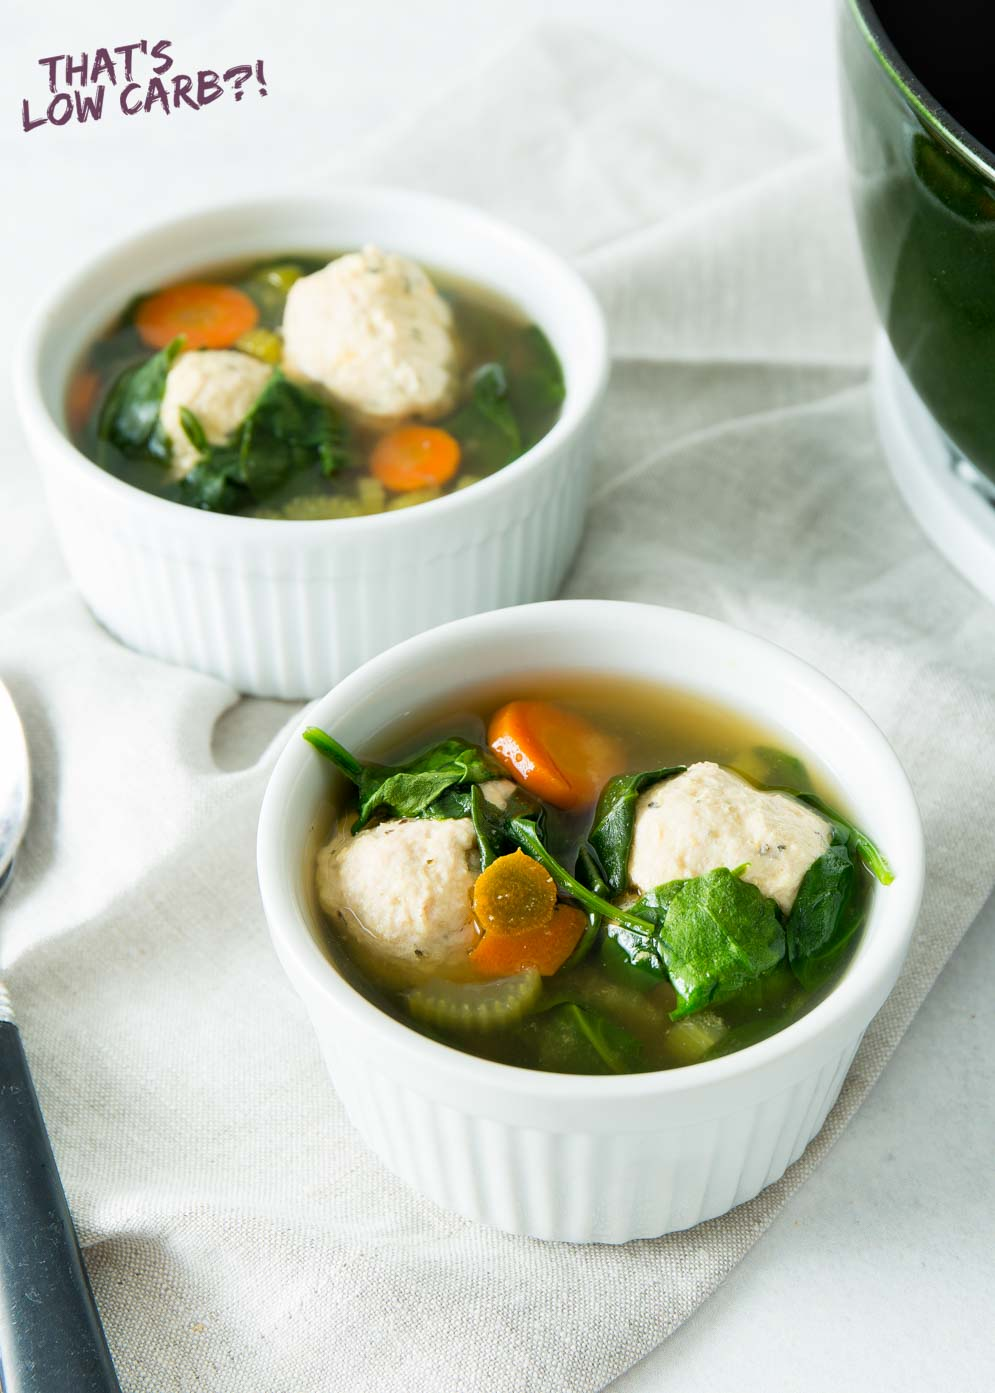 Italian Wedding Soup that is naturally low carb